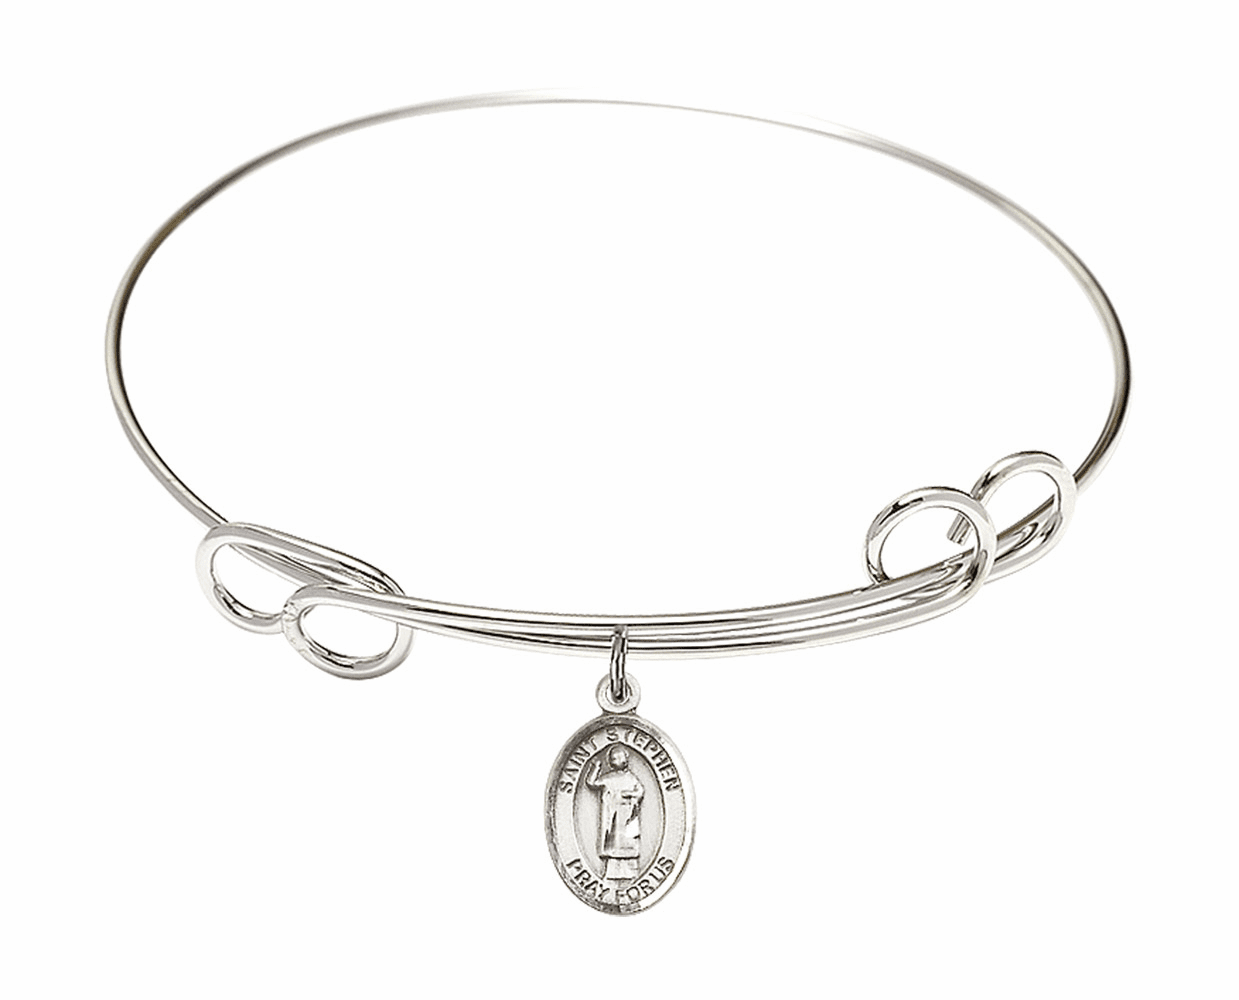 Round Loop St Stephen the Martyr Bangle Charm Bracelet by Bliss